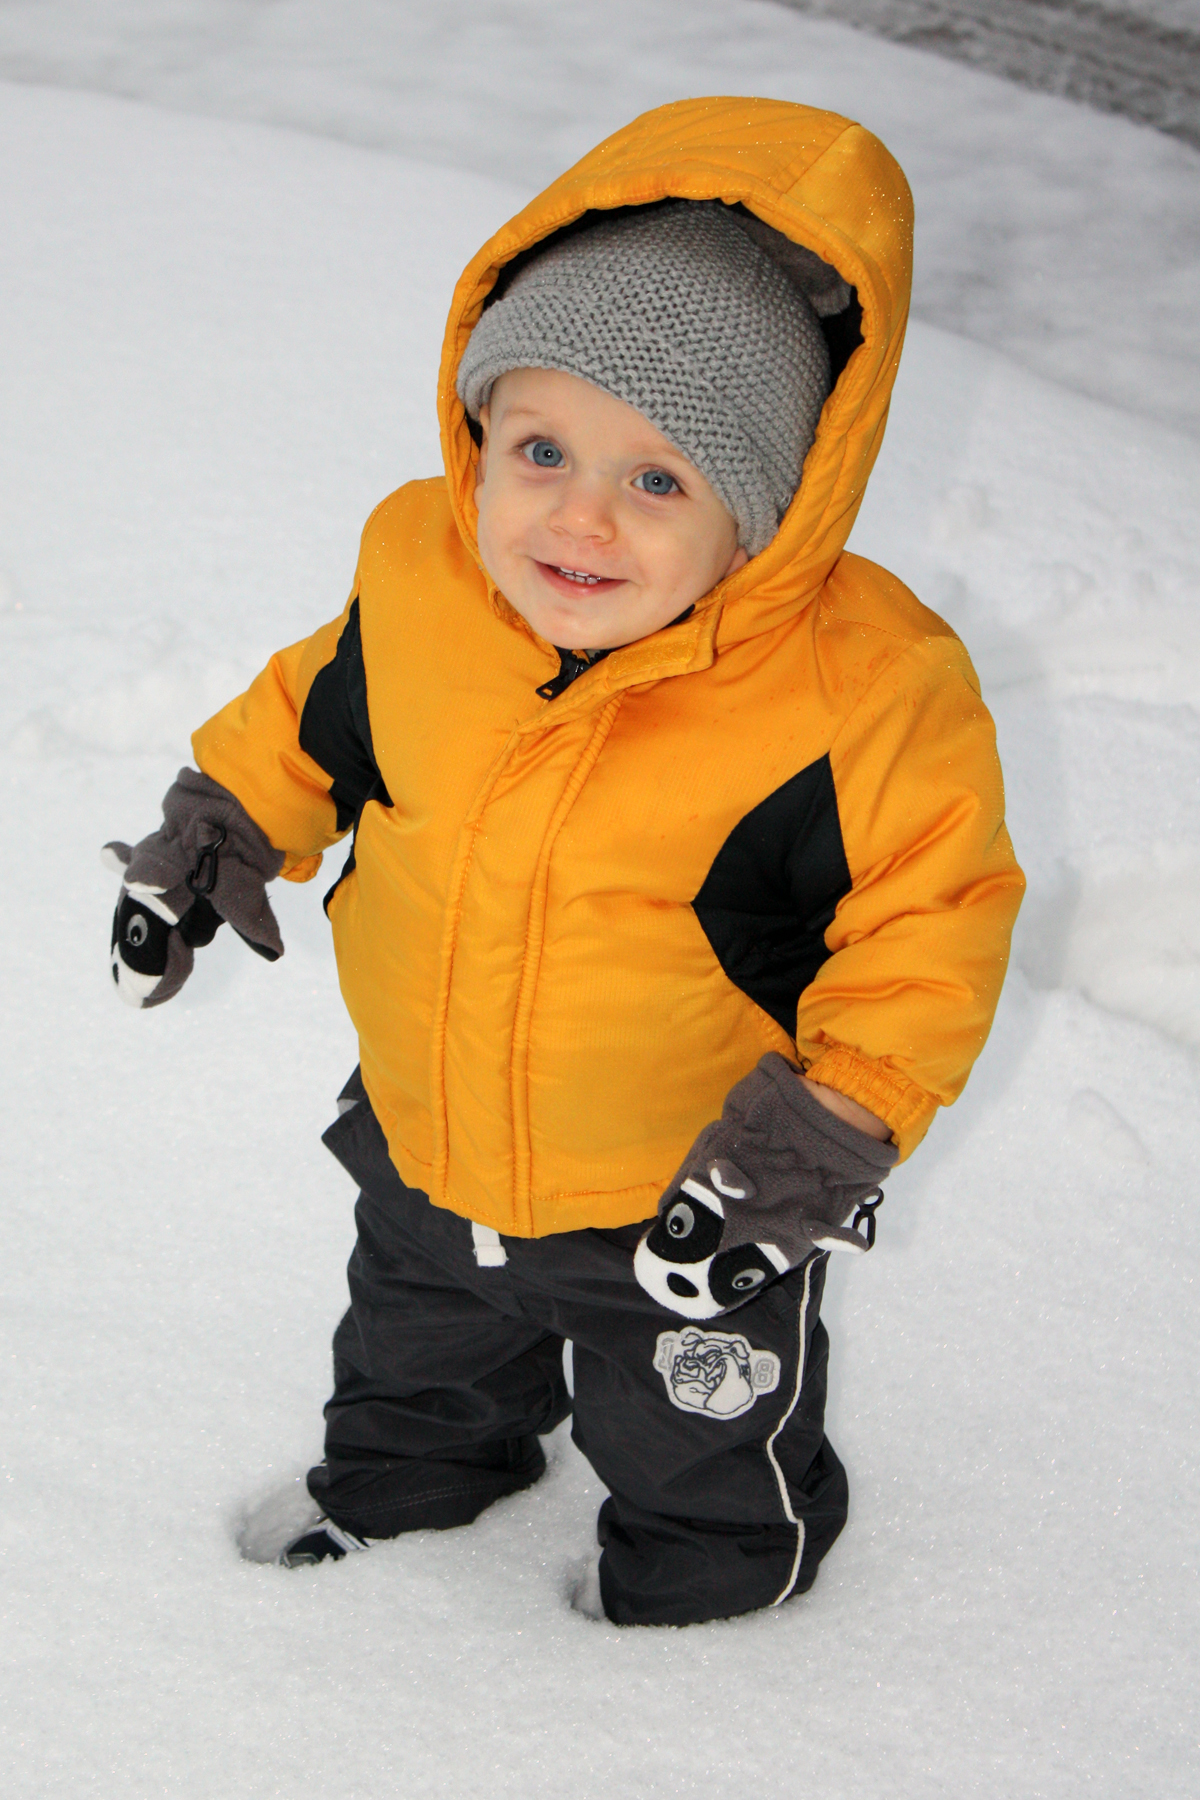 James Ransom, 11 months, enjoys playing in the snow for the first time. Son of Jeramy and Brittany Ransom of Van Buren.